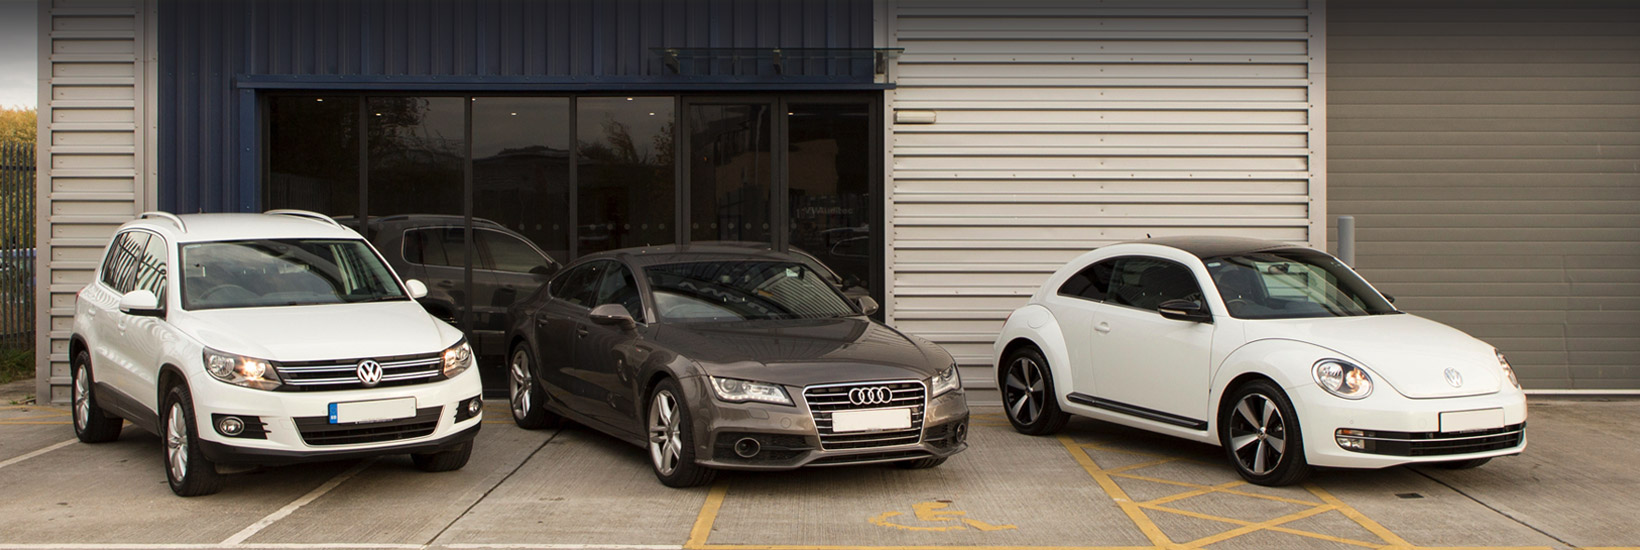 VW and Audi Cars